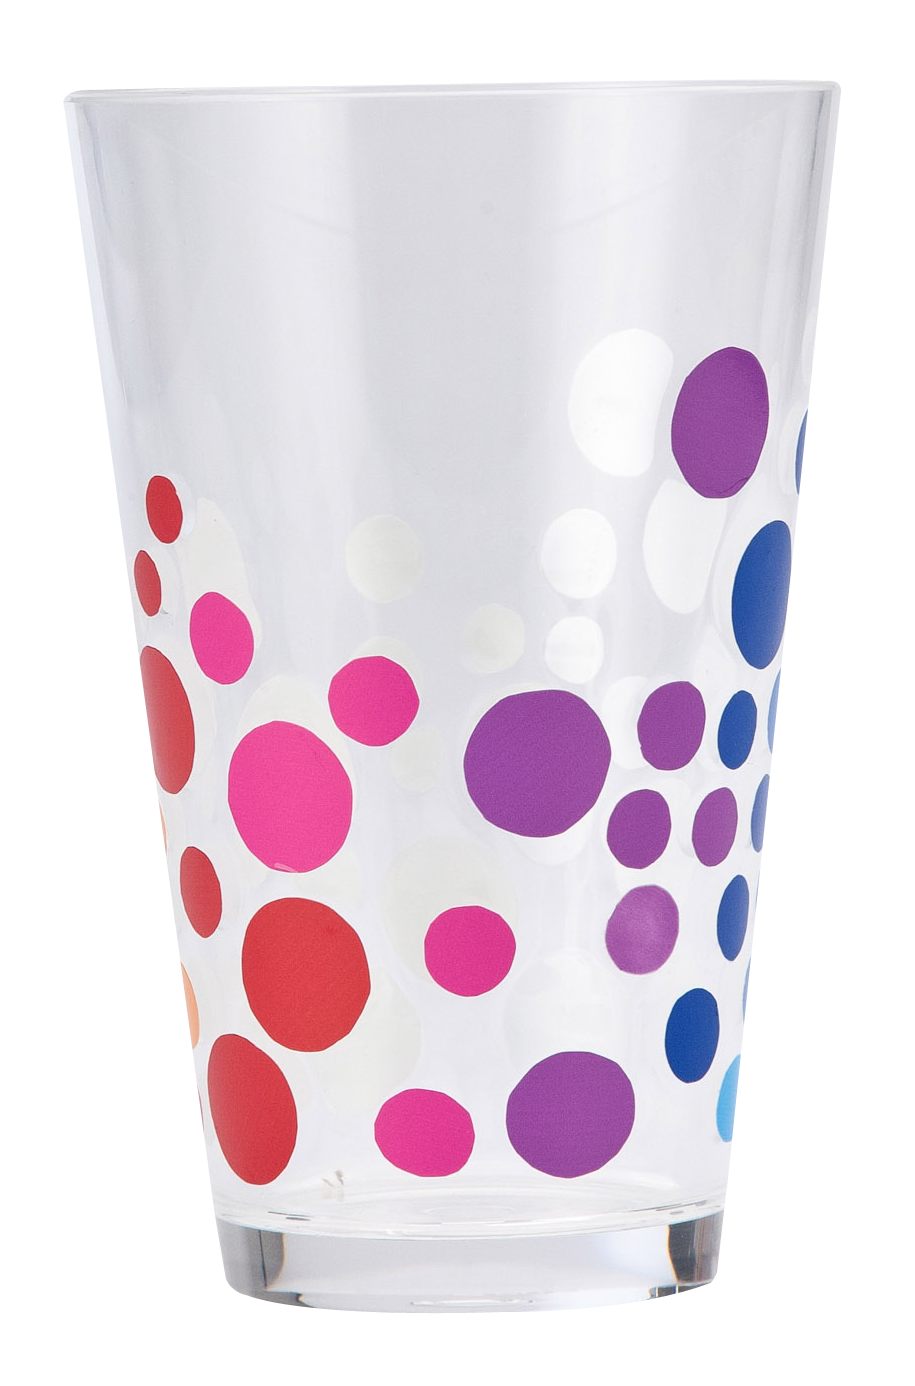 Cup with dots PNG Image